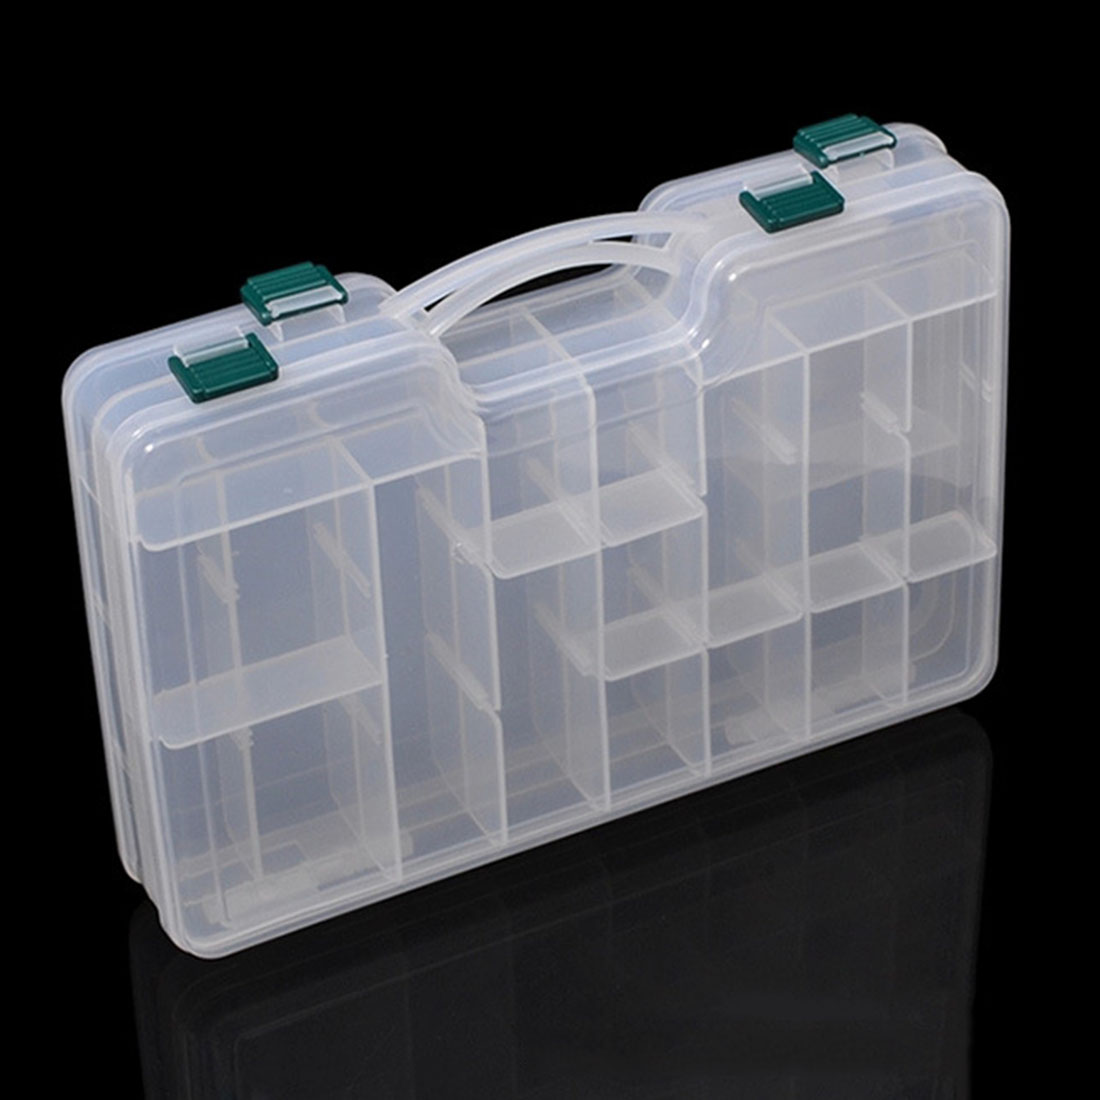 20 slots 2 layers plastic detachable fly fishing lure for Best fishing tackle box